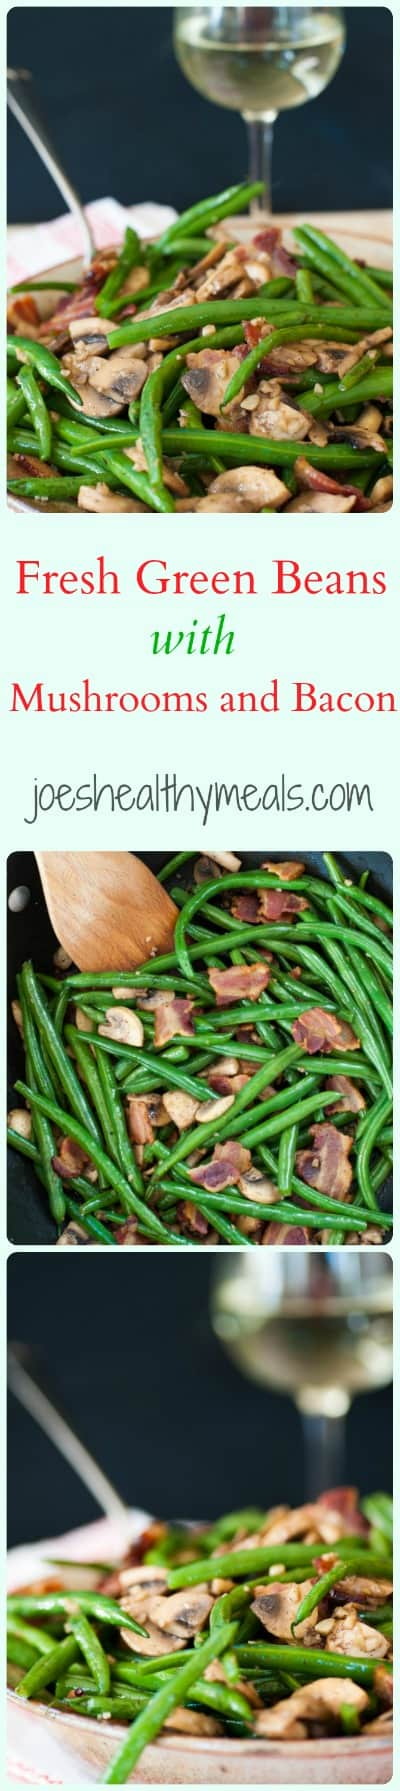 Green beans with mushrooms and bacon. Easy and delicious side dish with lots of bacony flavor and green bean freshness. | joeshealthymeals.com